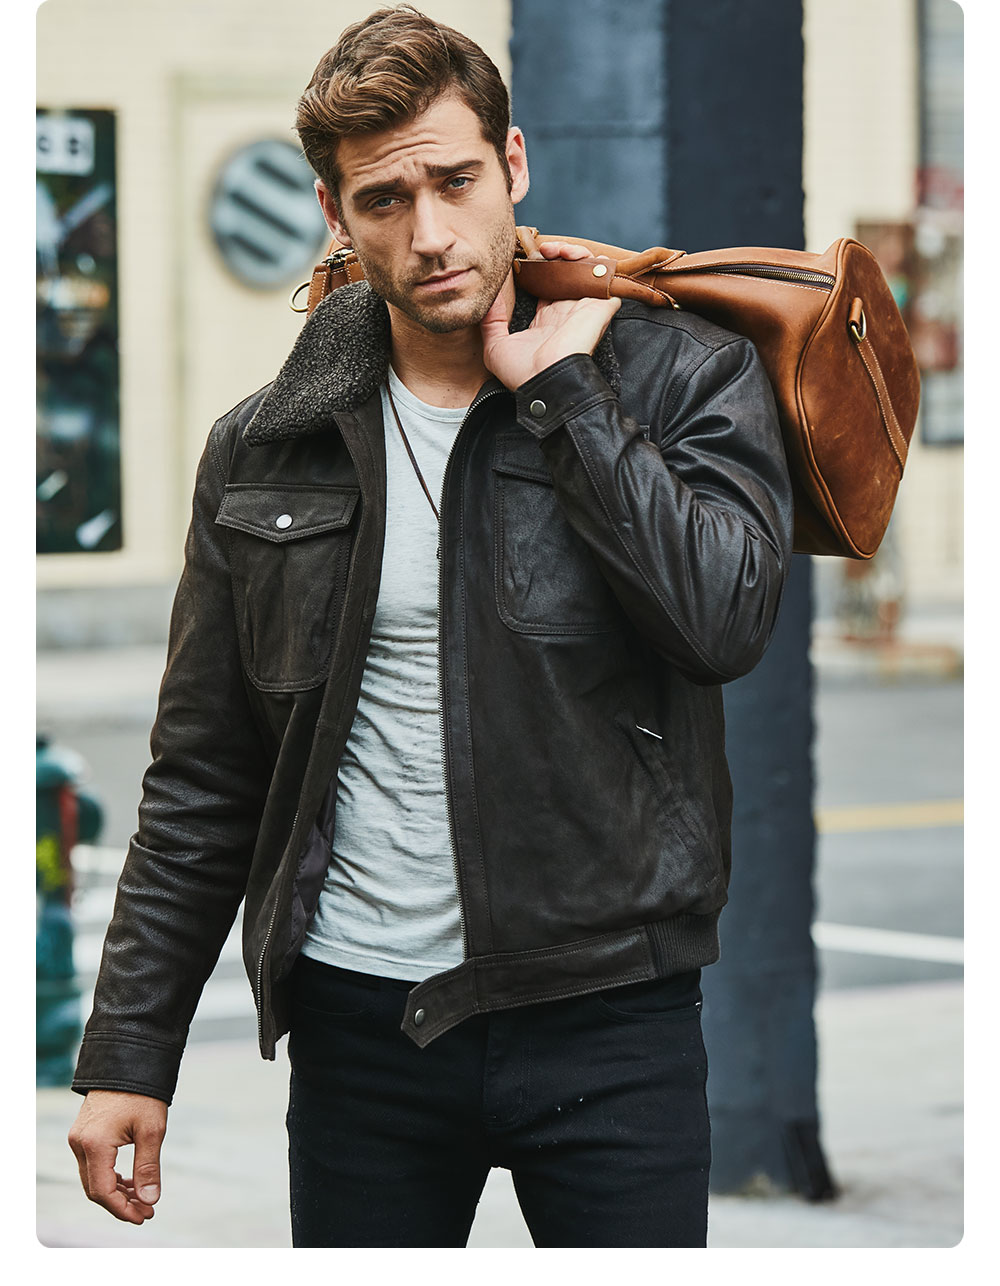 H452962f96efd40e0b02cfd97024bd68bH FLAVOR Men's Real Leather Jacket Genuine Leather jacket with faux fur collar male Motorcycle warm coat Genuine Leather Jacket